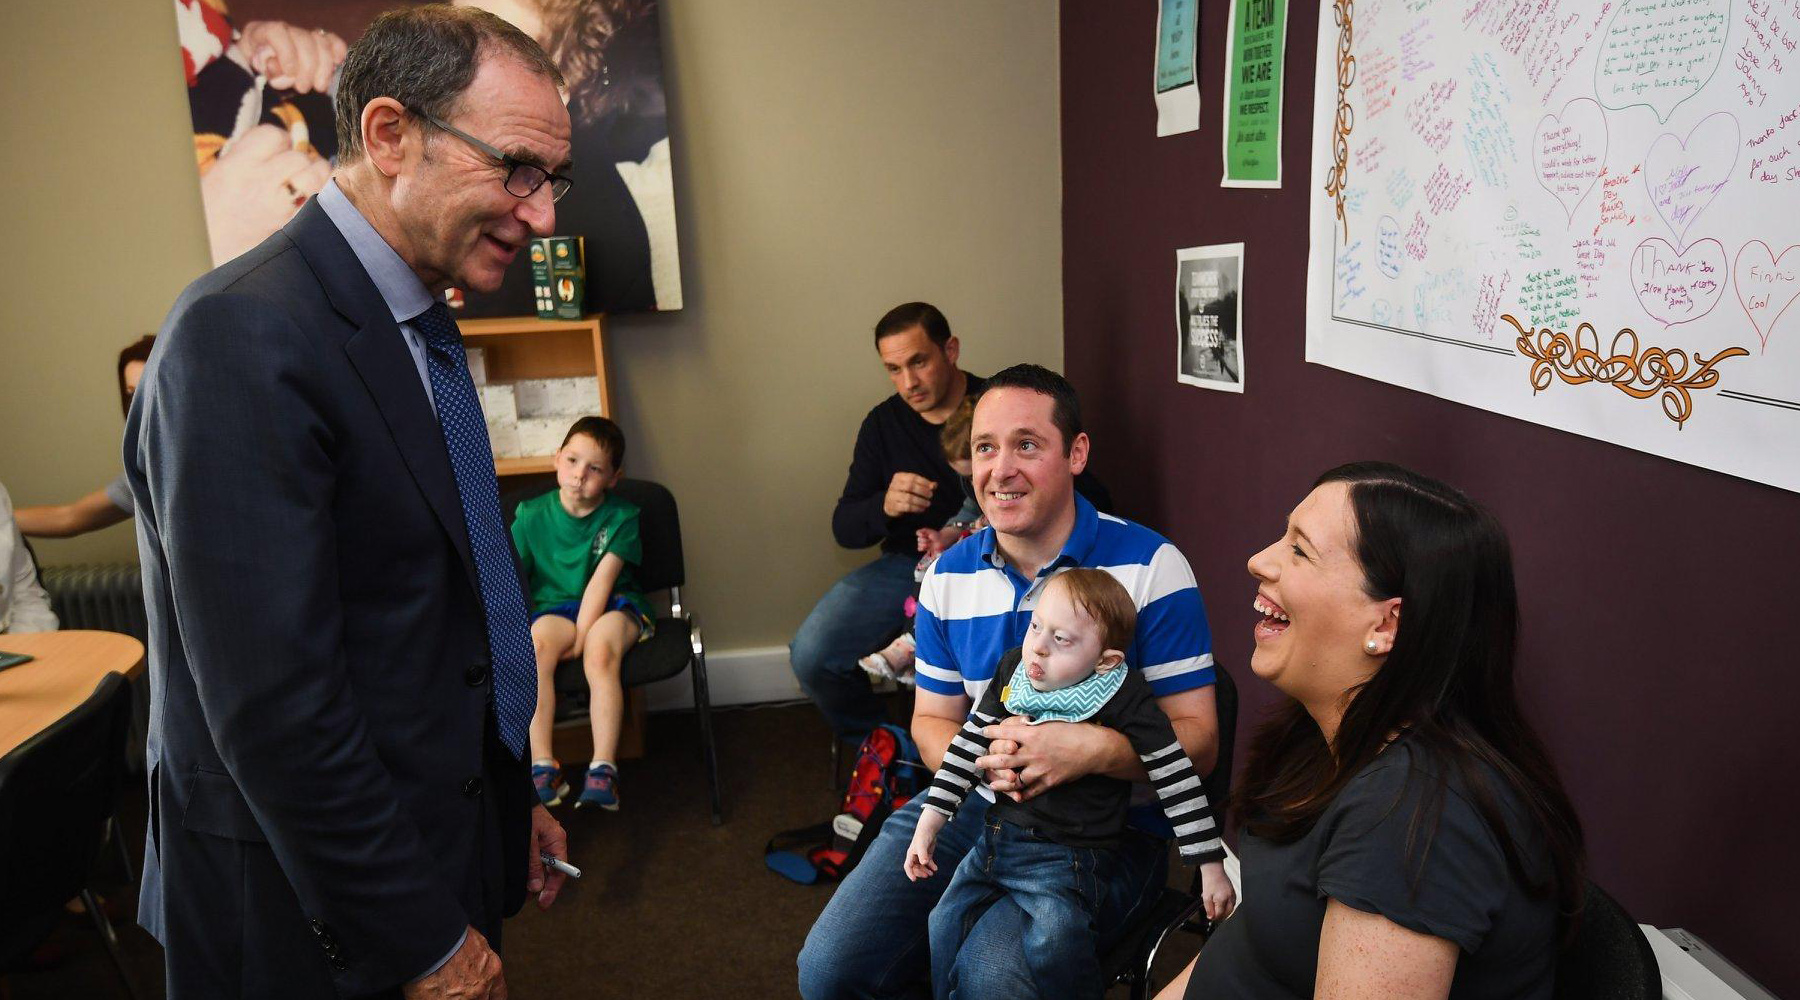 Martin O'Neill chatting with Jack & Jill Families